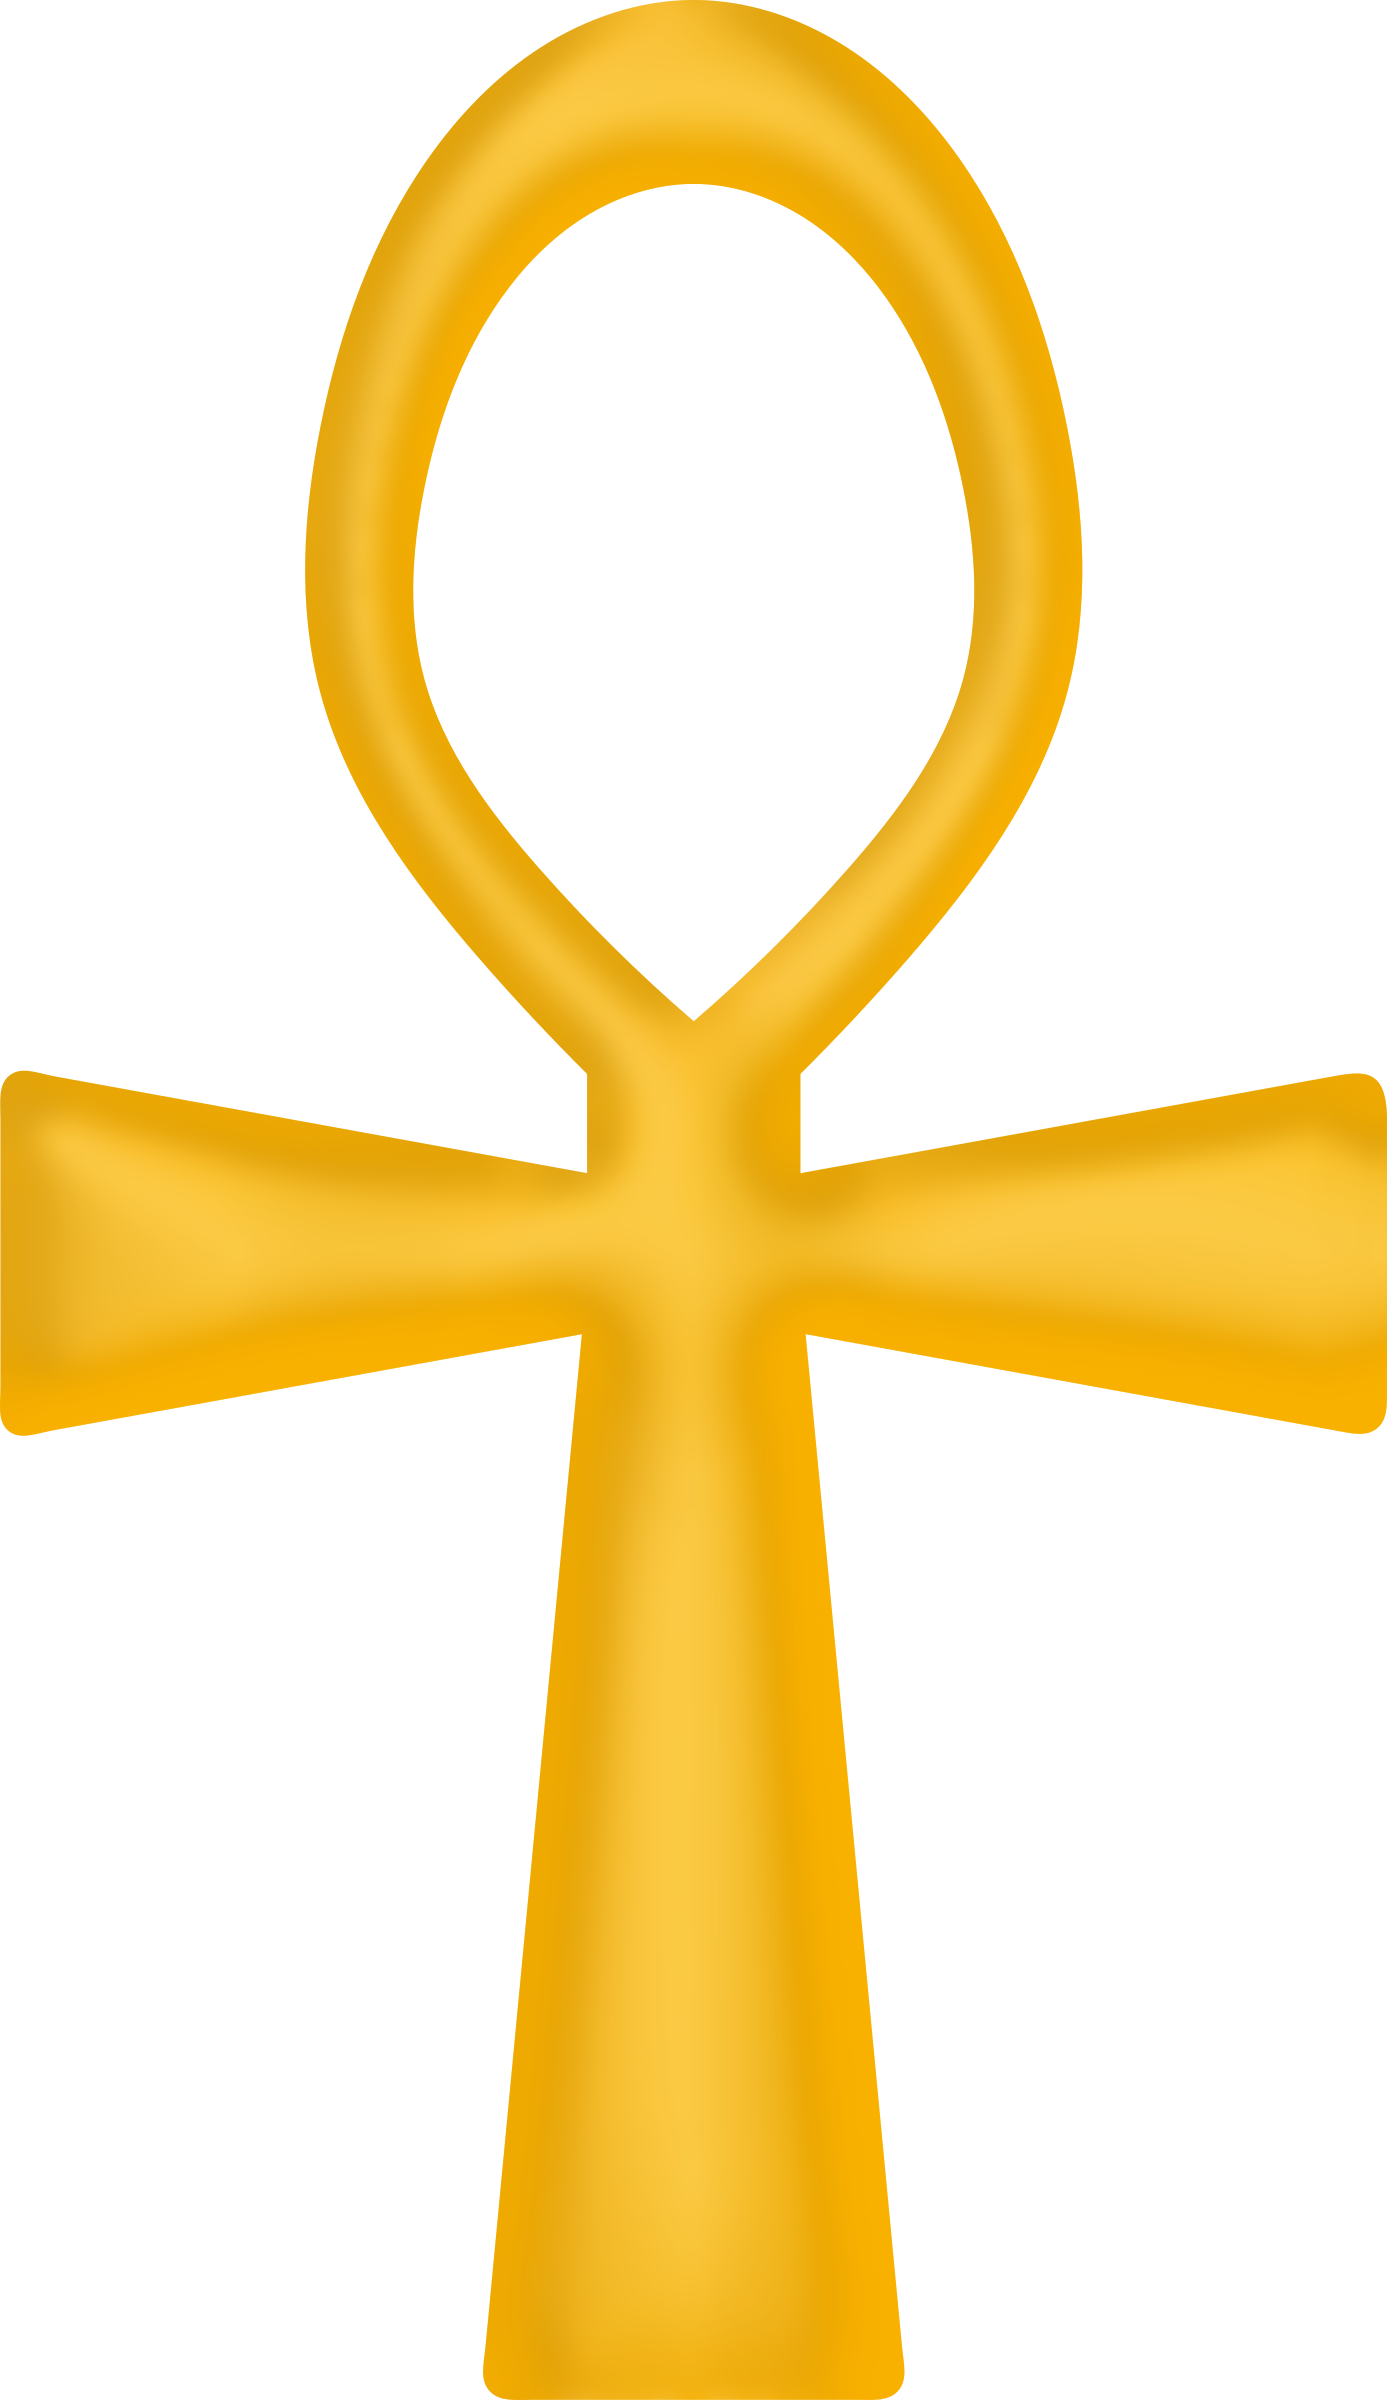 Golden Ankh by Firkin